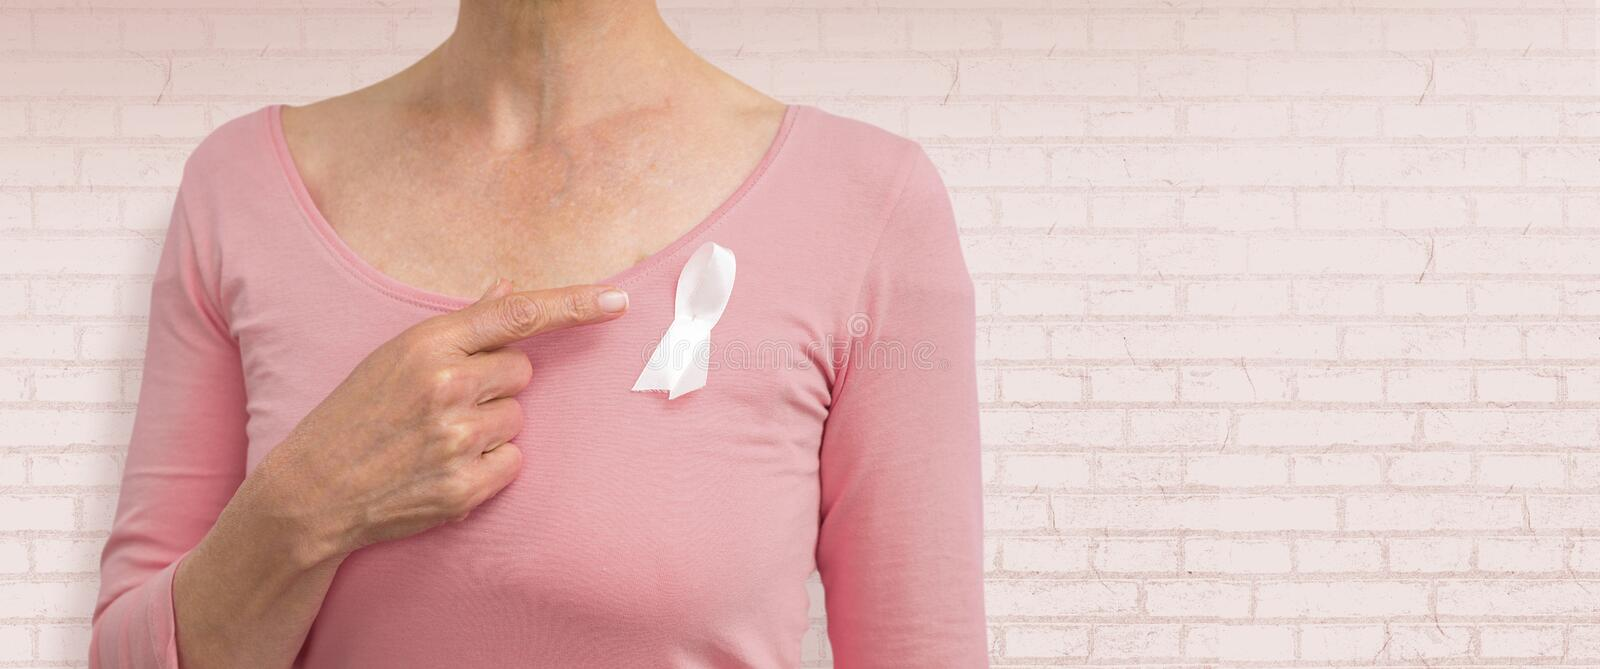 Composite image of woman in pink outfits showing ribbon for breast cancer awareness royalty free stock image